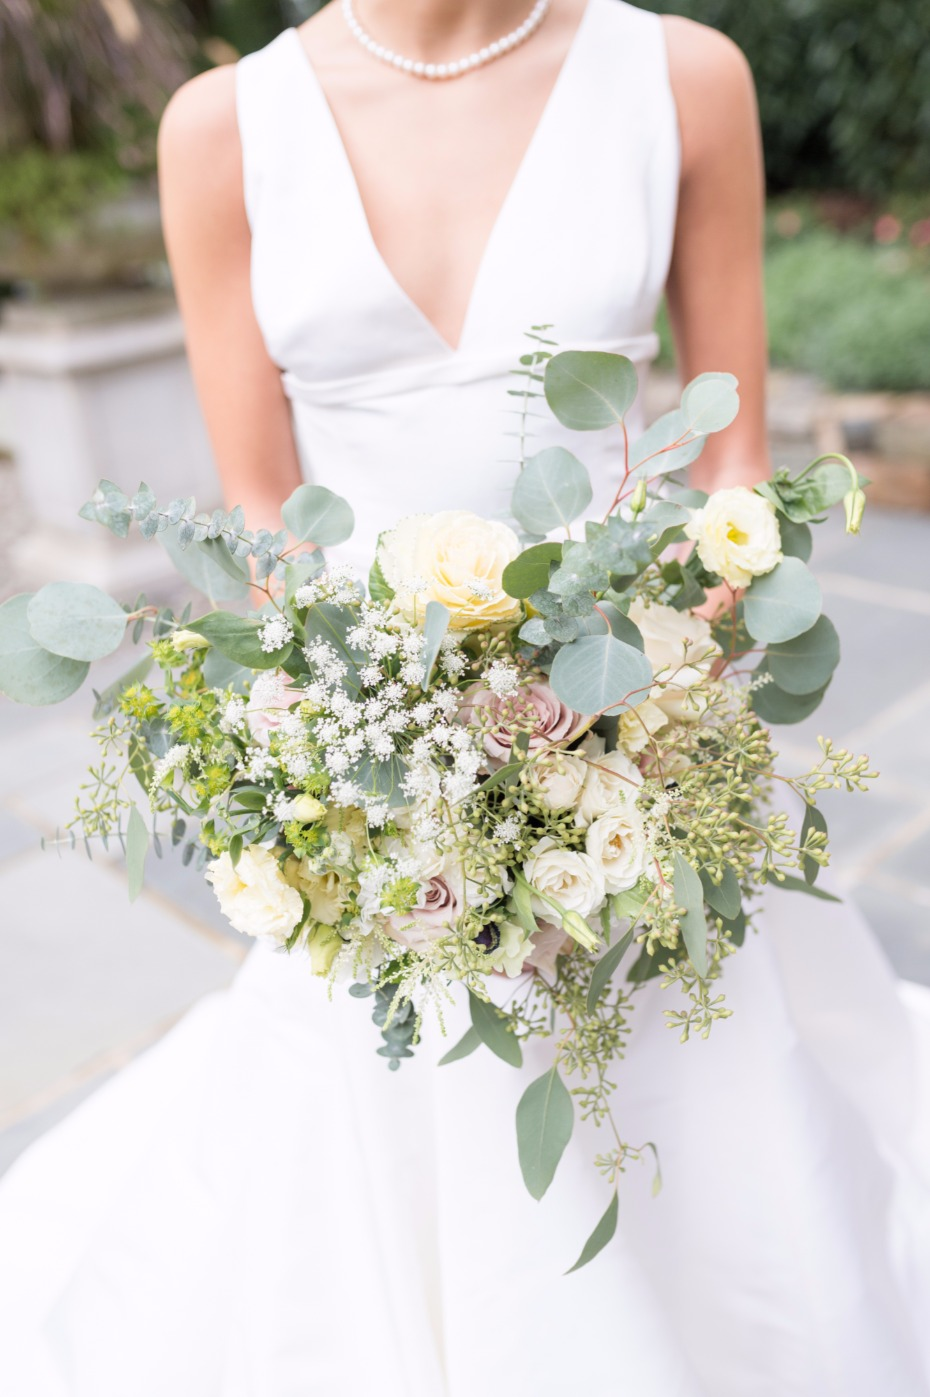 neutrals wedding bouquet with varying whites and greenery